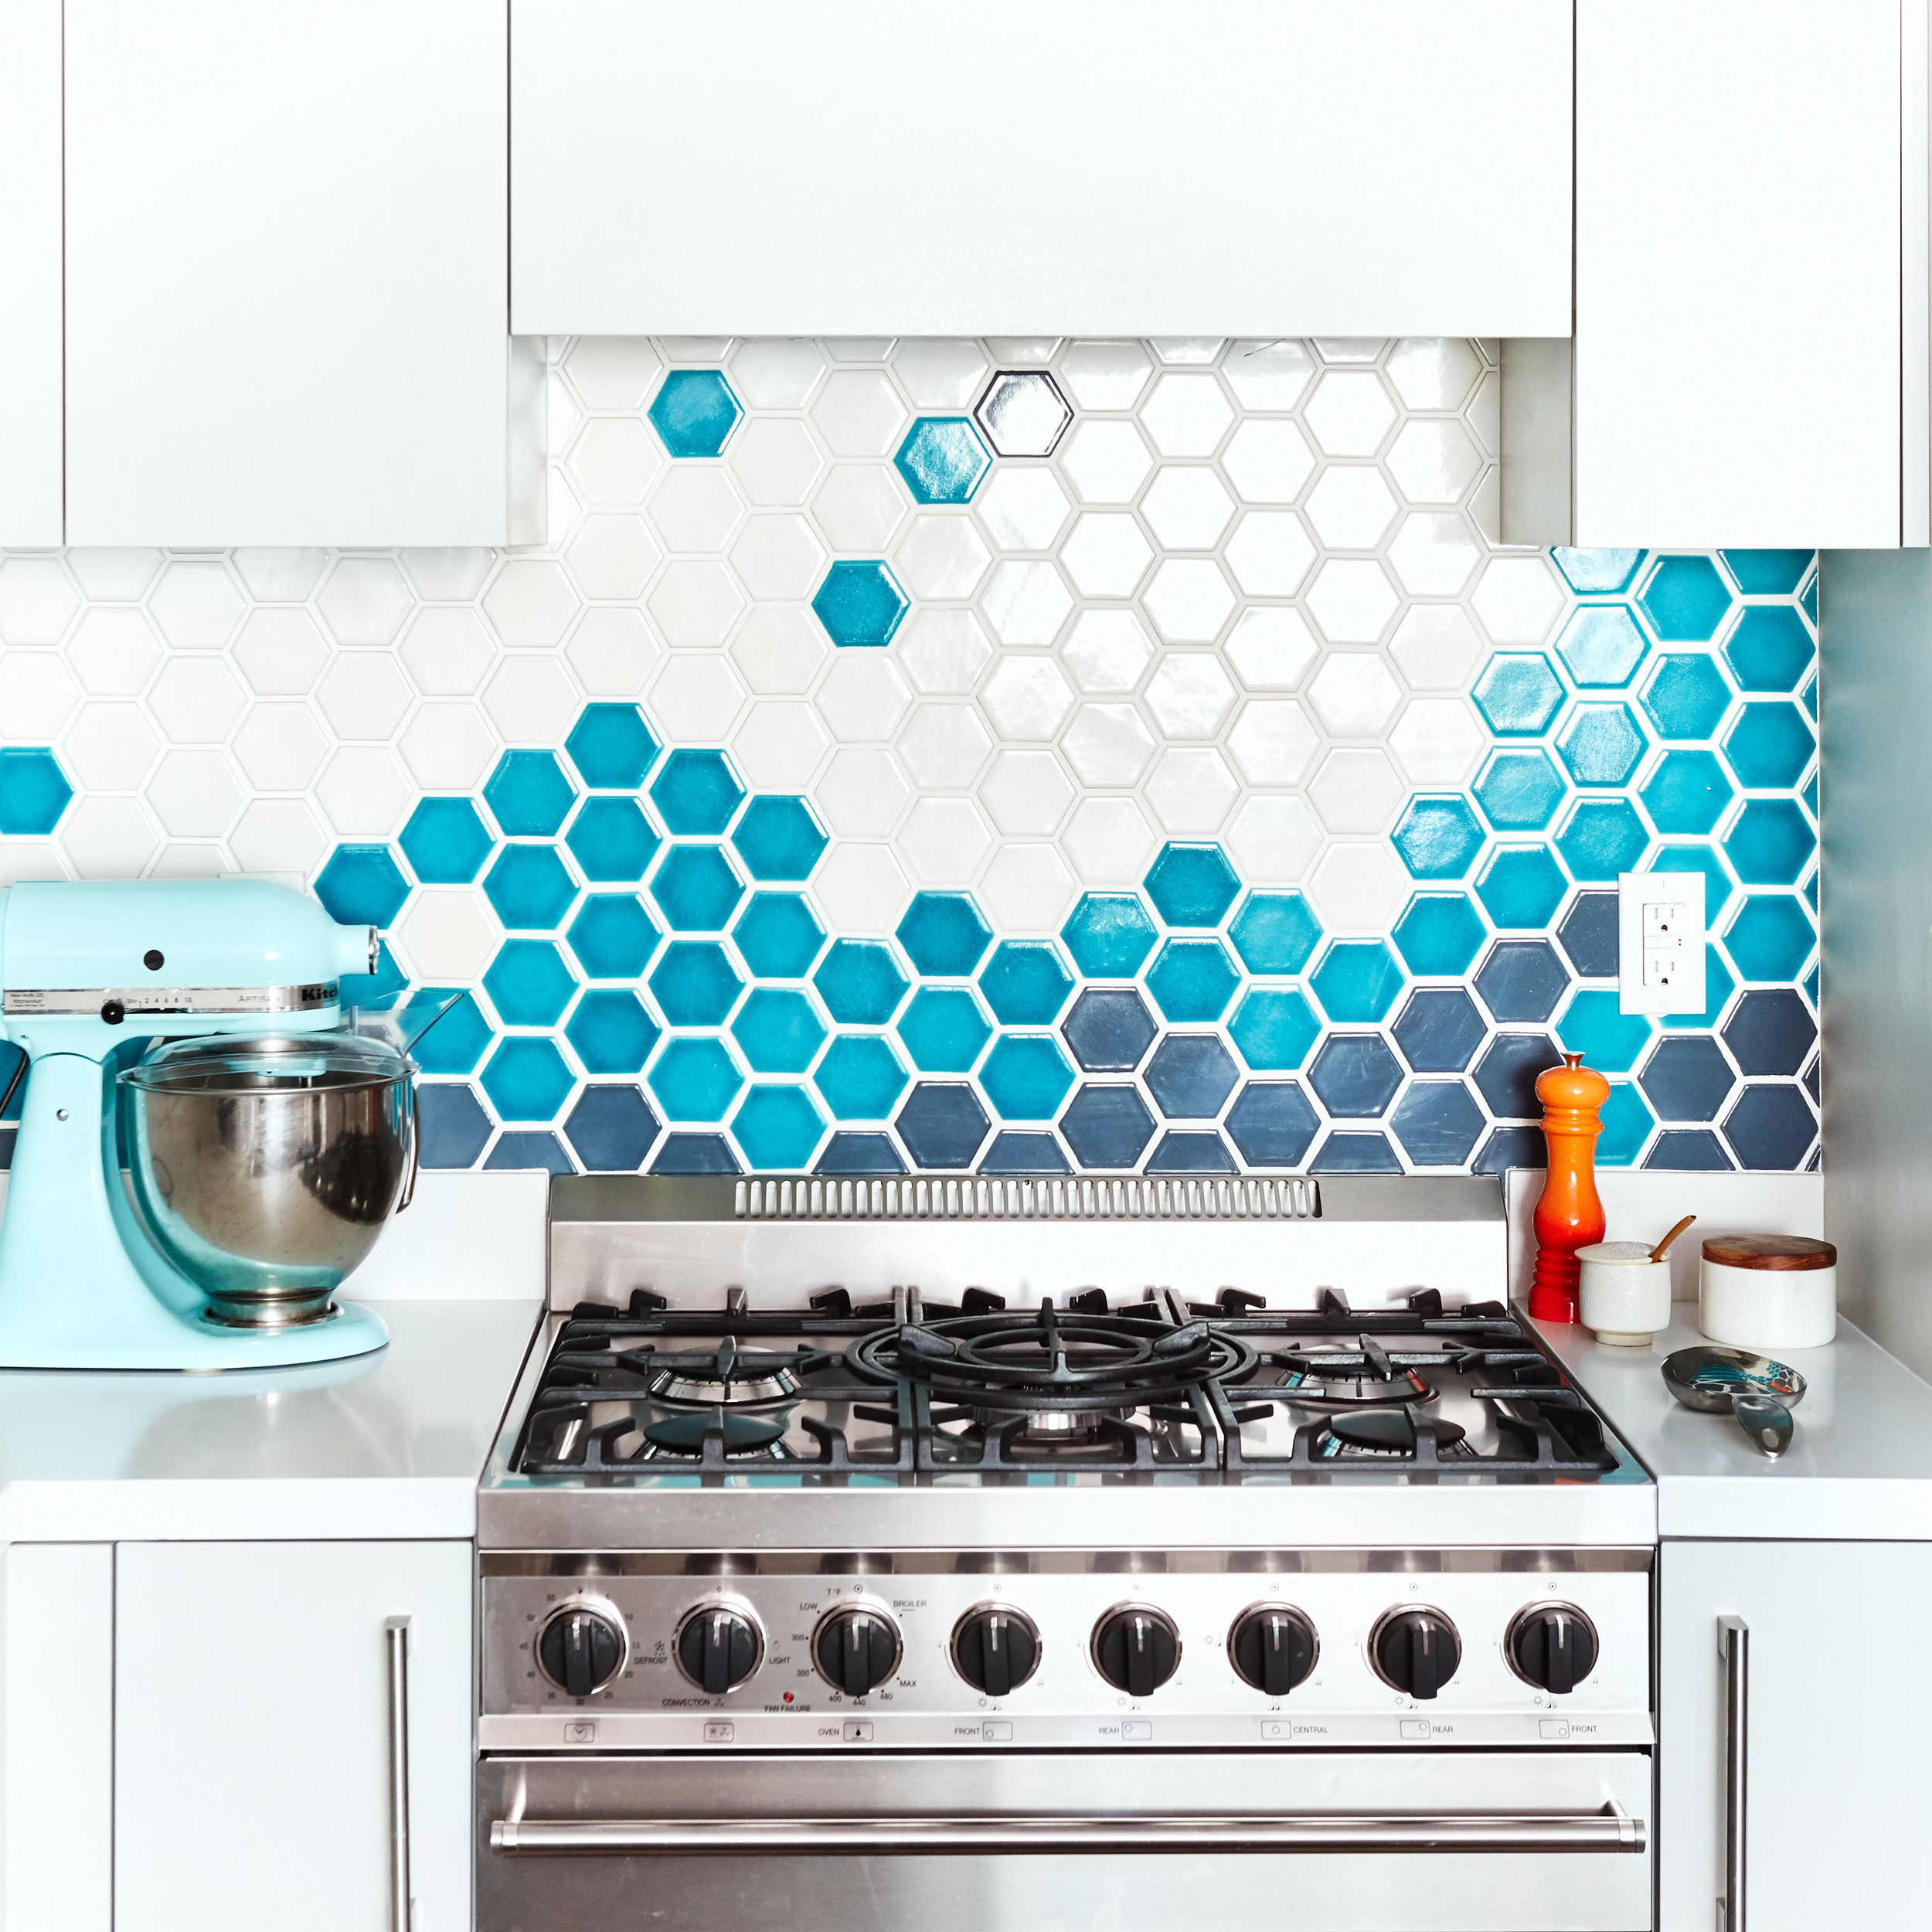 Noz Design - Mission Boho Kitchen Backsplash.jpg